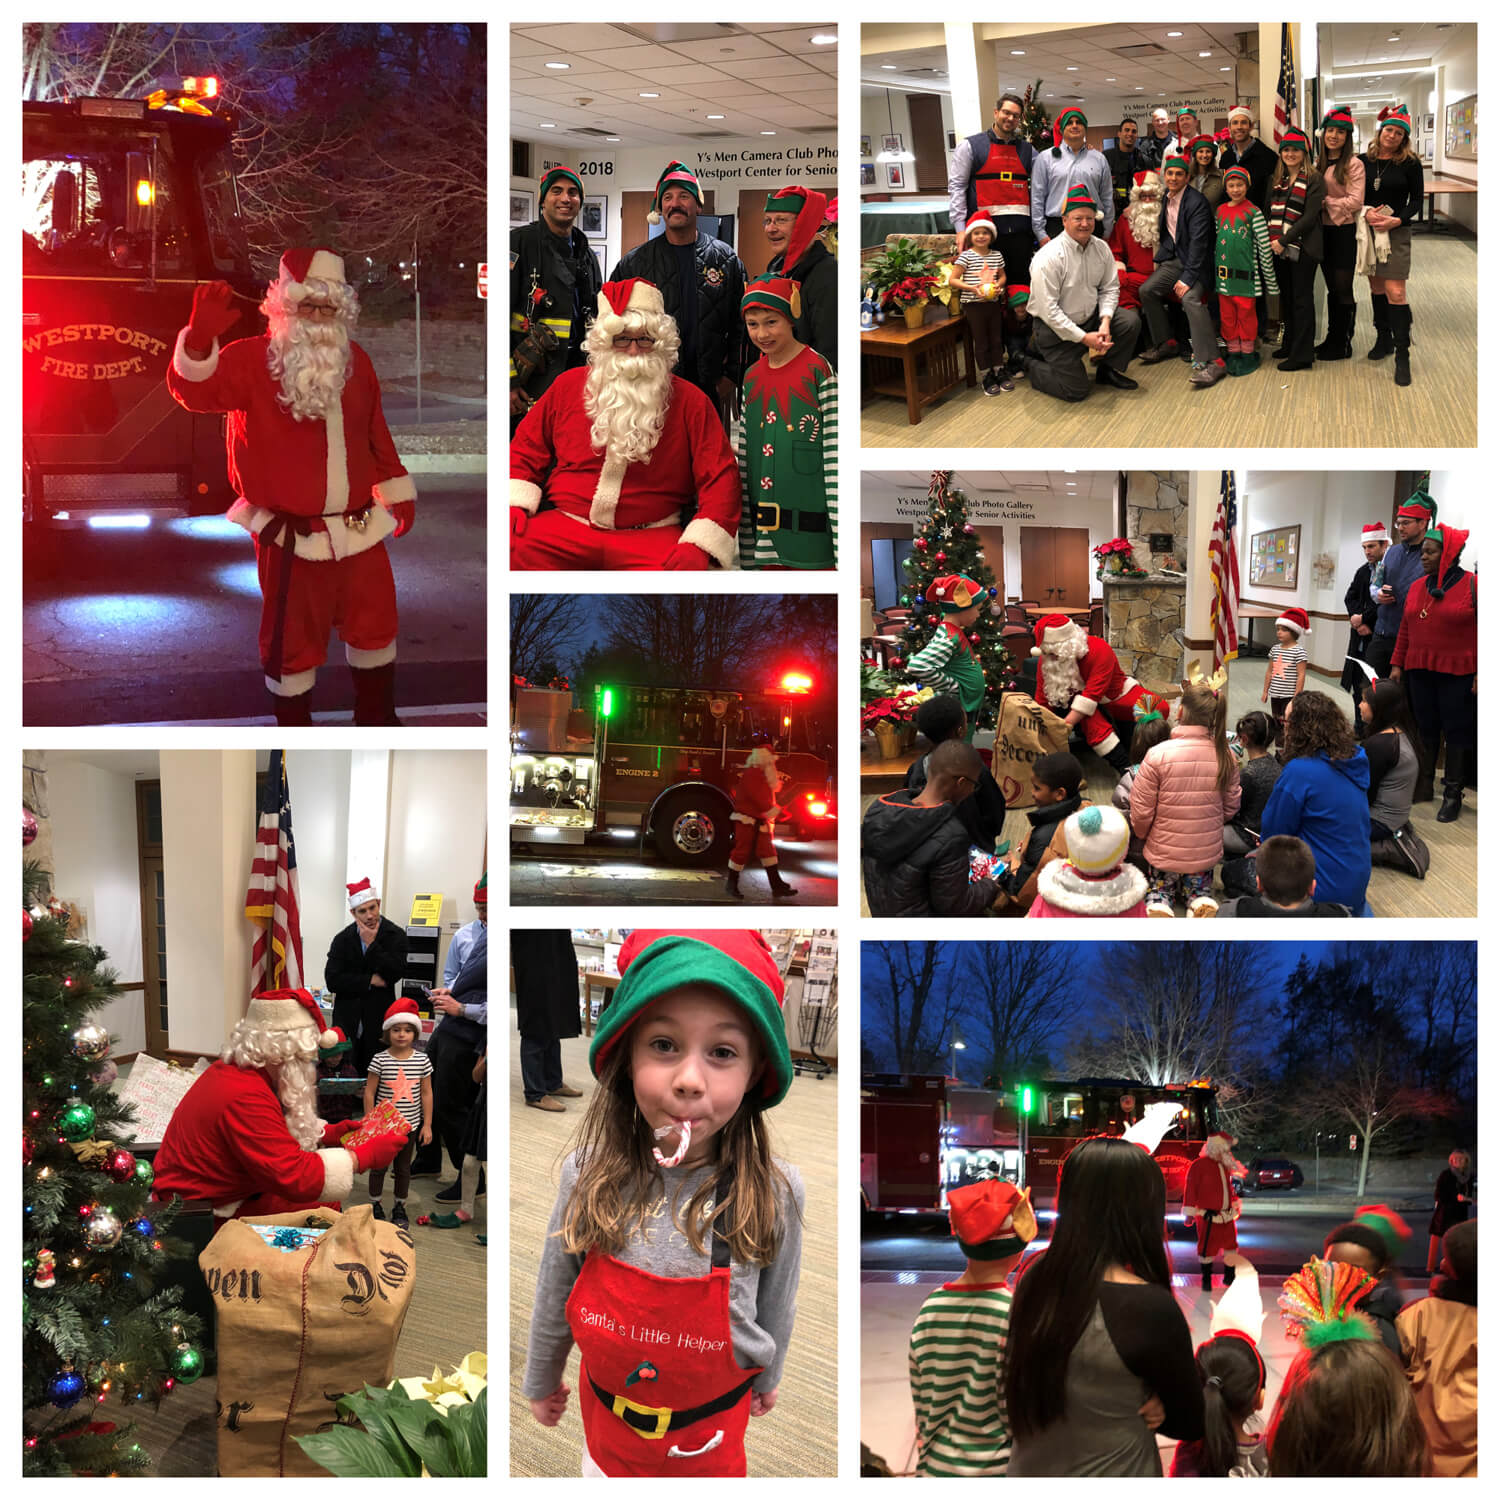 2018 Santa Visit event photo collage